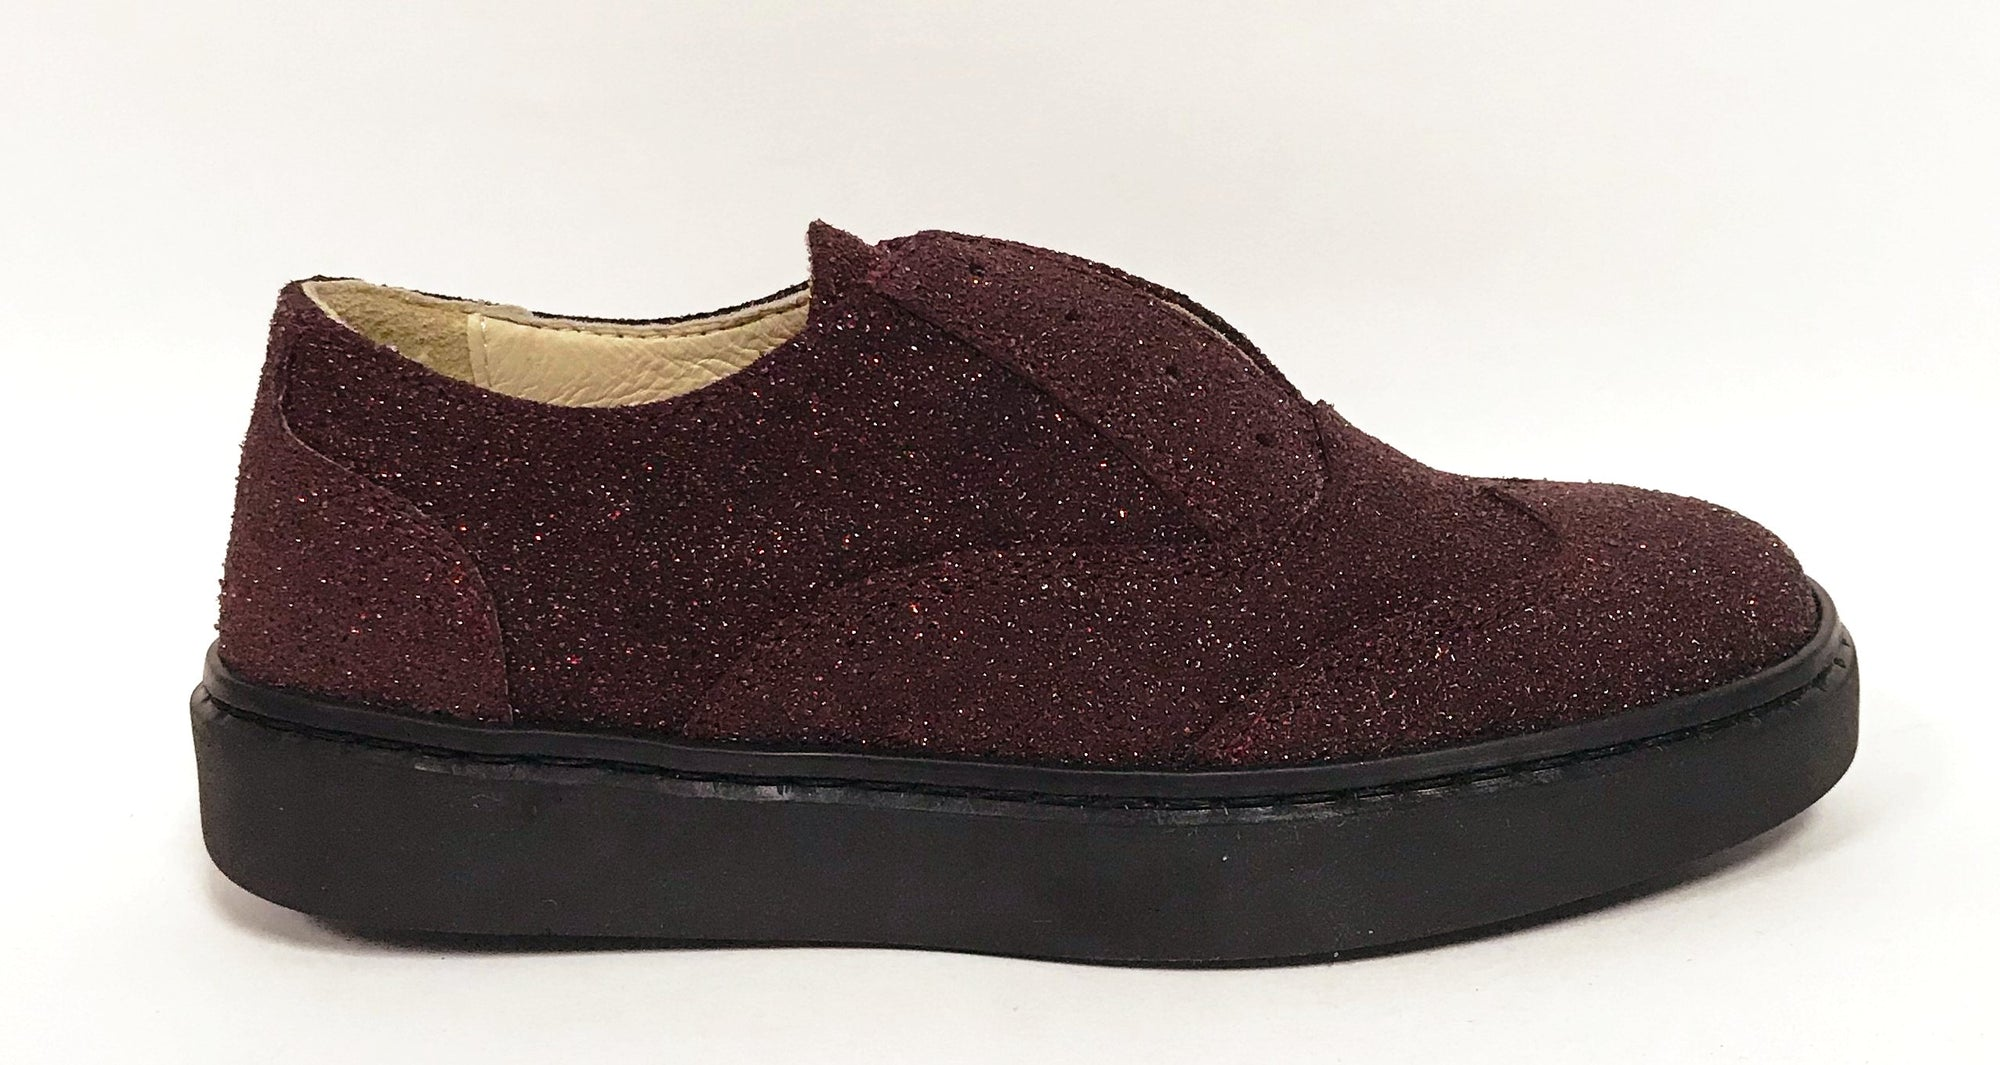 Zapeti Burgundy Glitter Slip-on Oxford-Tassel Children Shoes